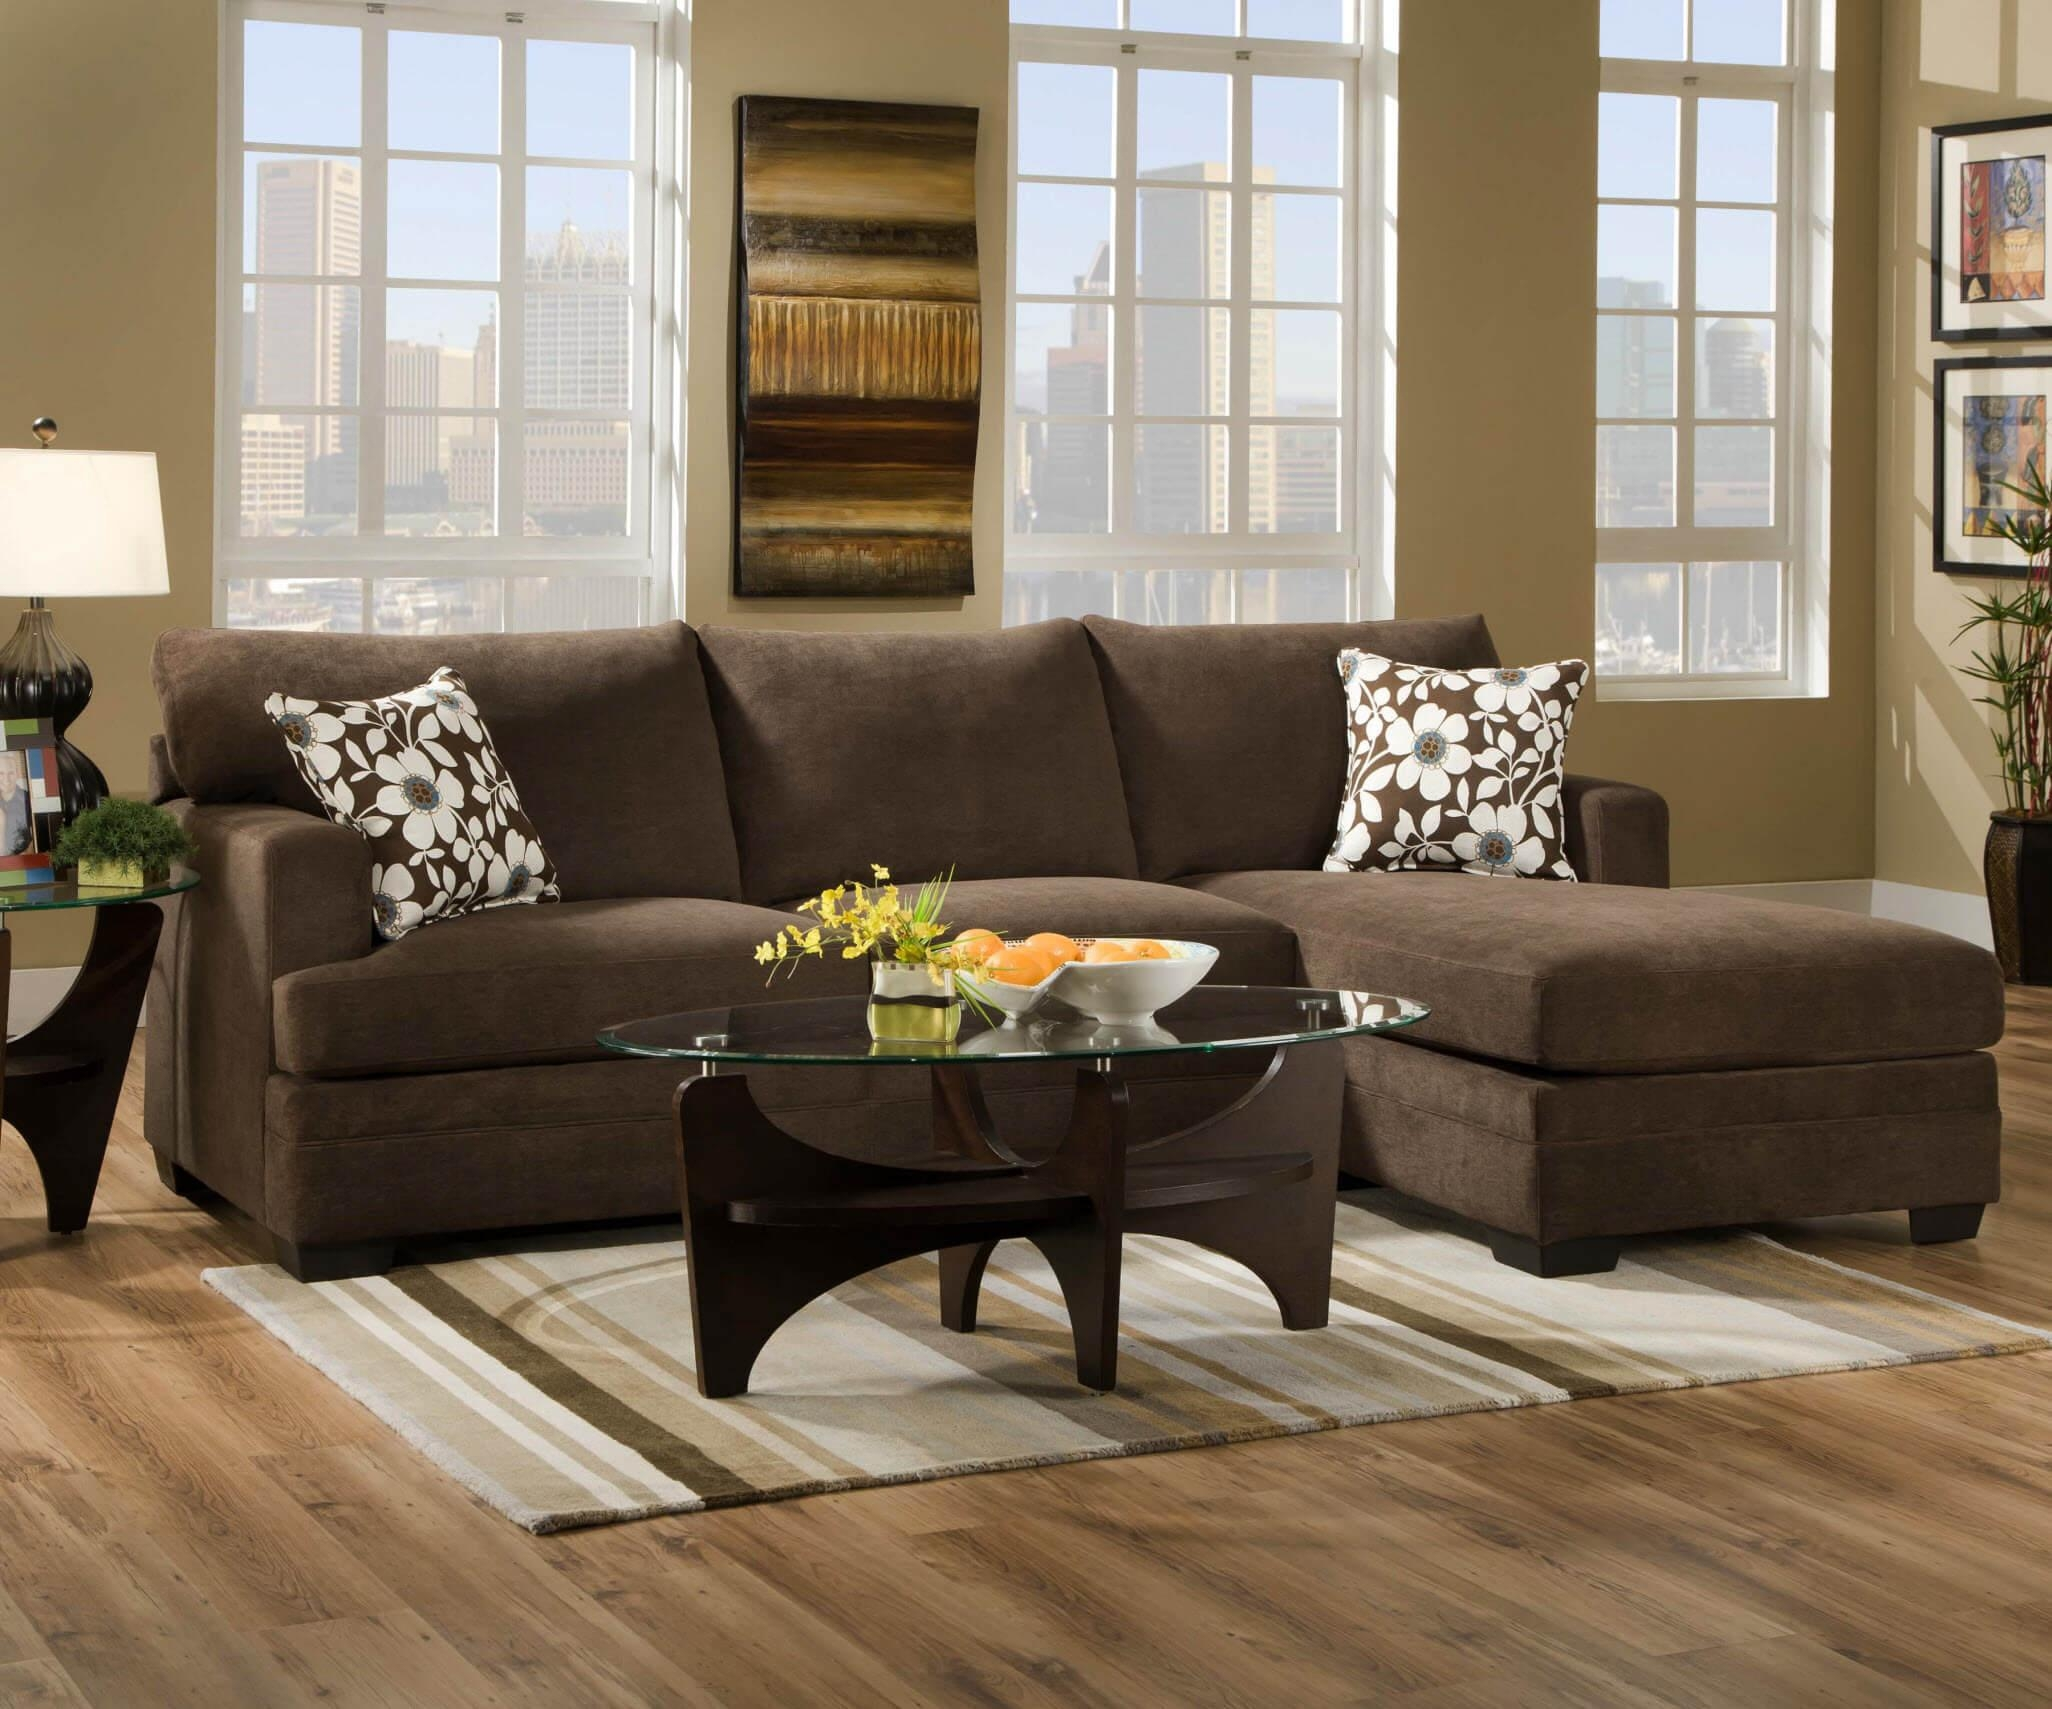 Sofas Center : Fascinating Simmons Sectional Sofa Picture Design With Regard To Simmons Sectional Sofas (Image 15 of 20)